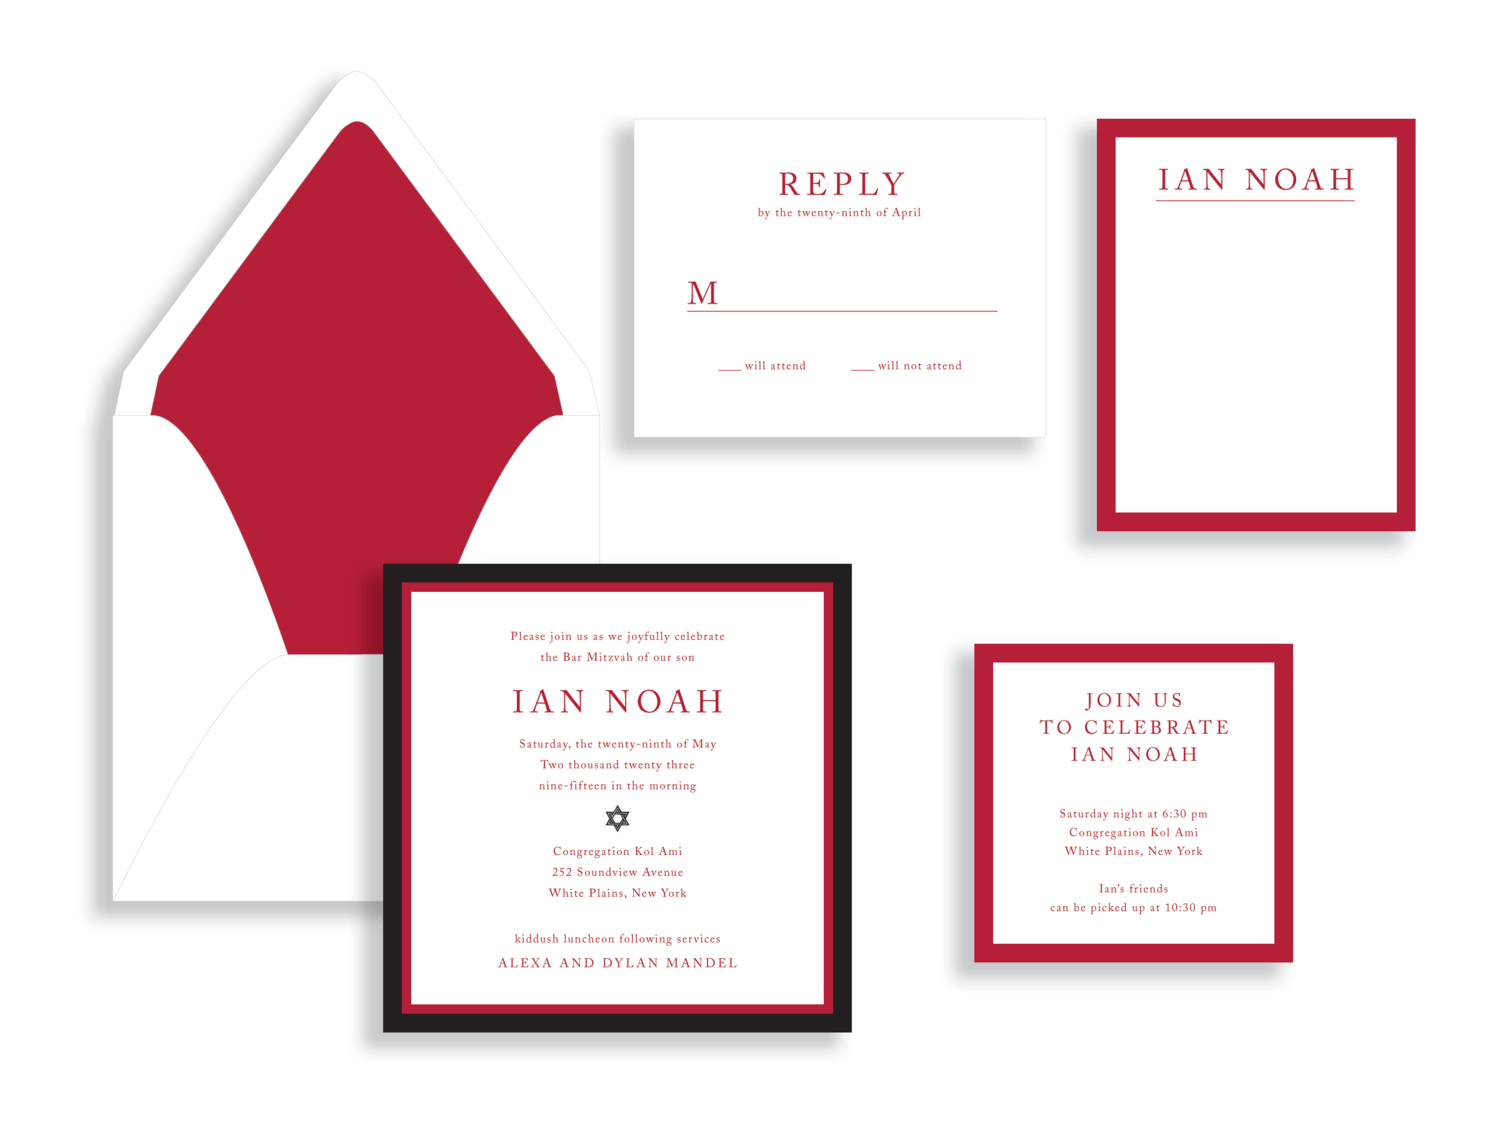 Ian bar mitzvah invitation in red and black available in Fairfax, VA from Staccato